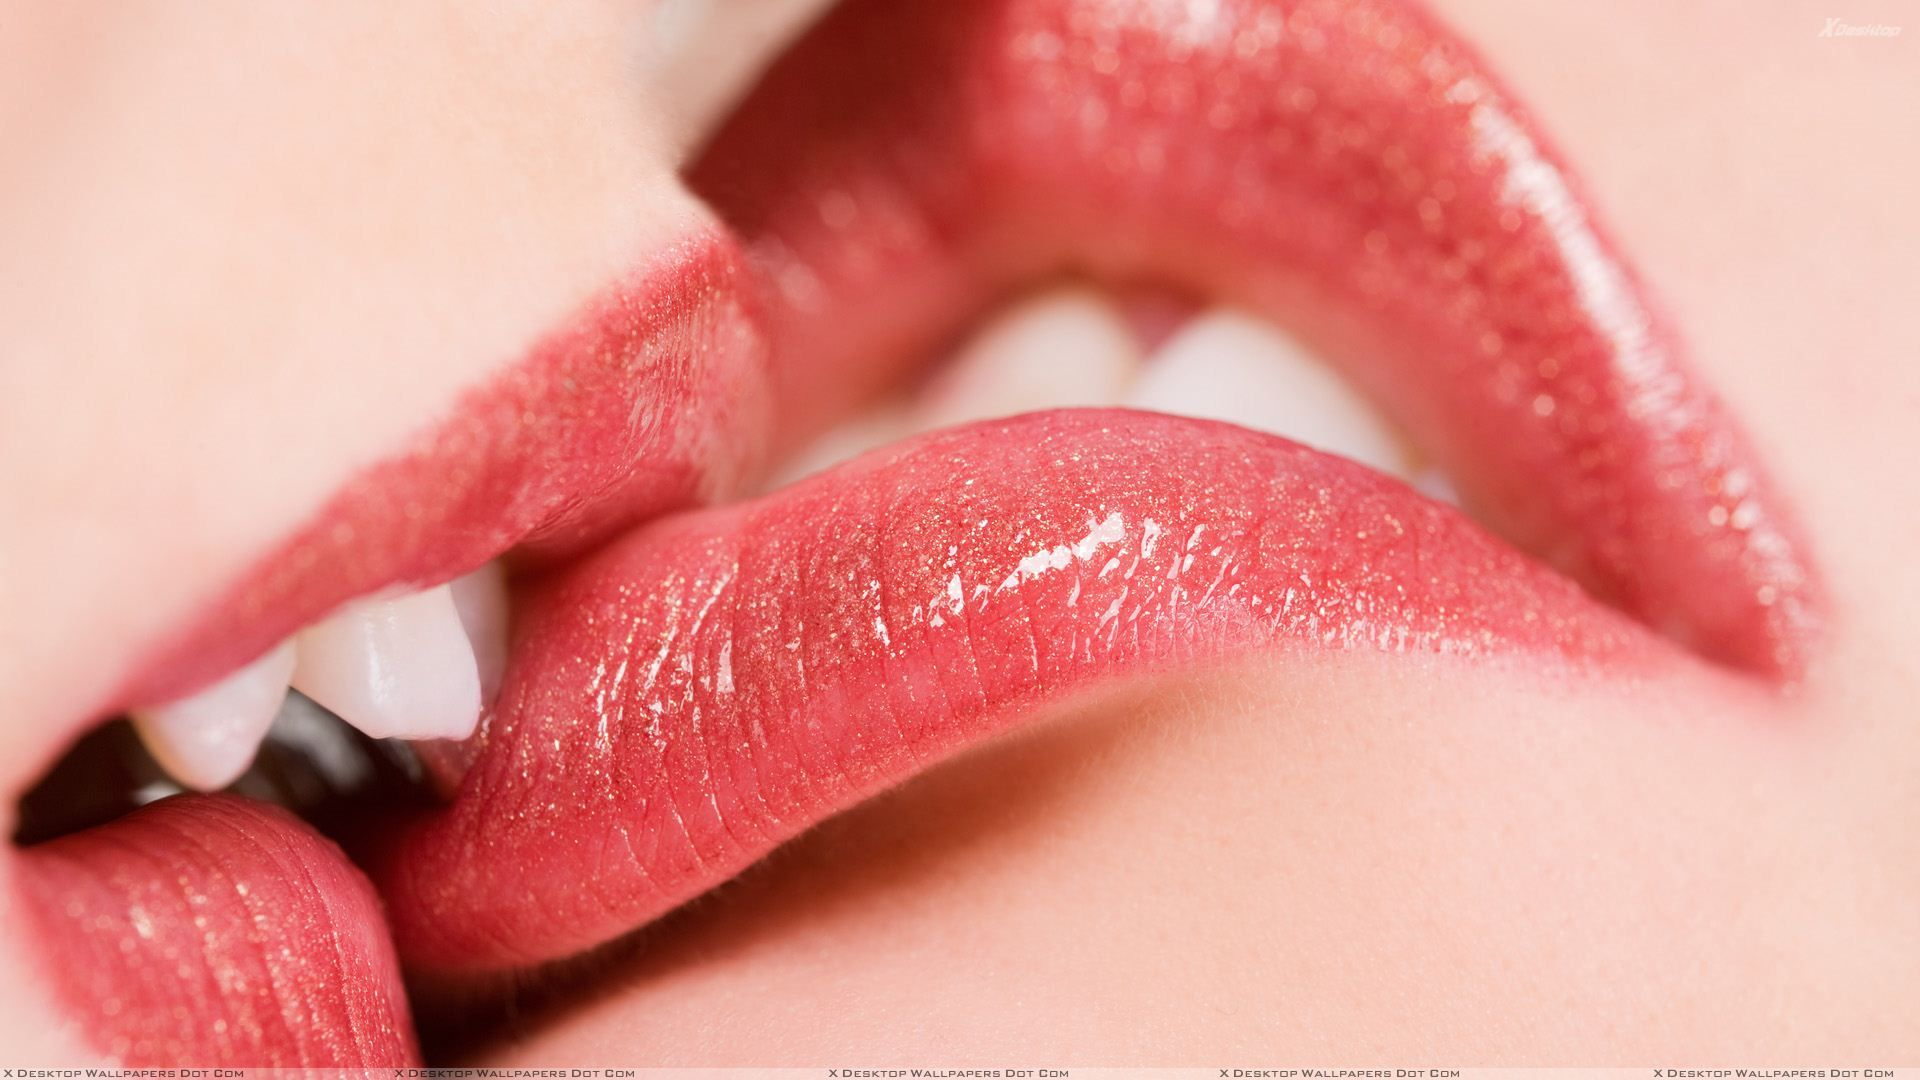 Lips Kissing Glossy Red Lips Closeup Wallpaper Lip Kiss Images